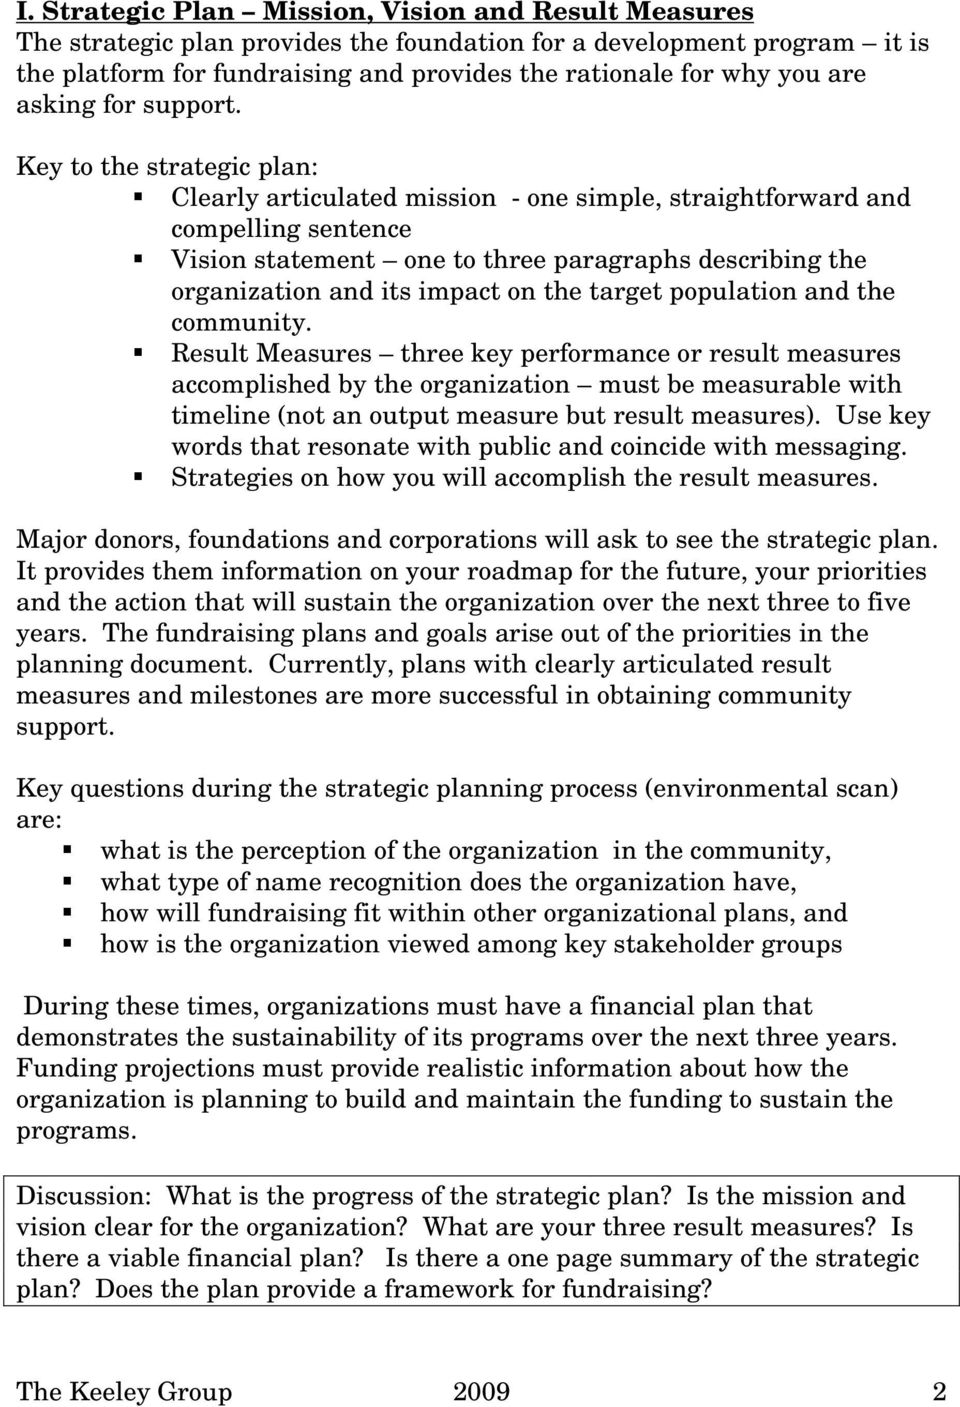 Key to the strategic plan: Clearly articulated mission - one simple, straightforward and compelling sentence Vision statement one to three paragraphs describing the organization and its impact on the